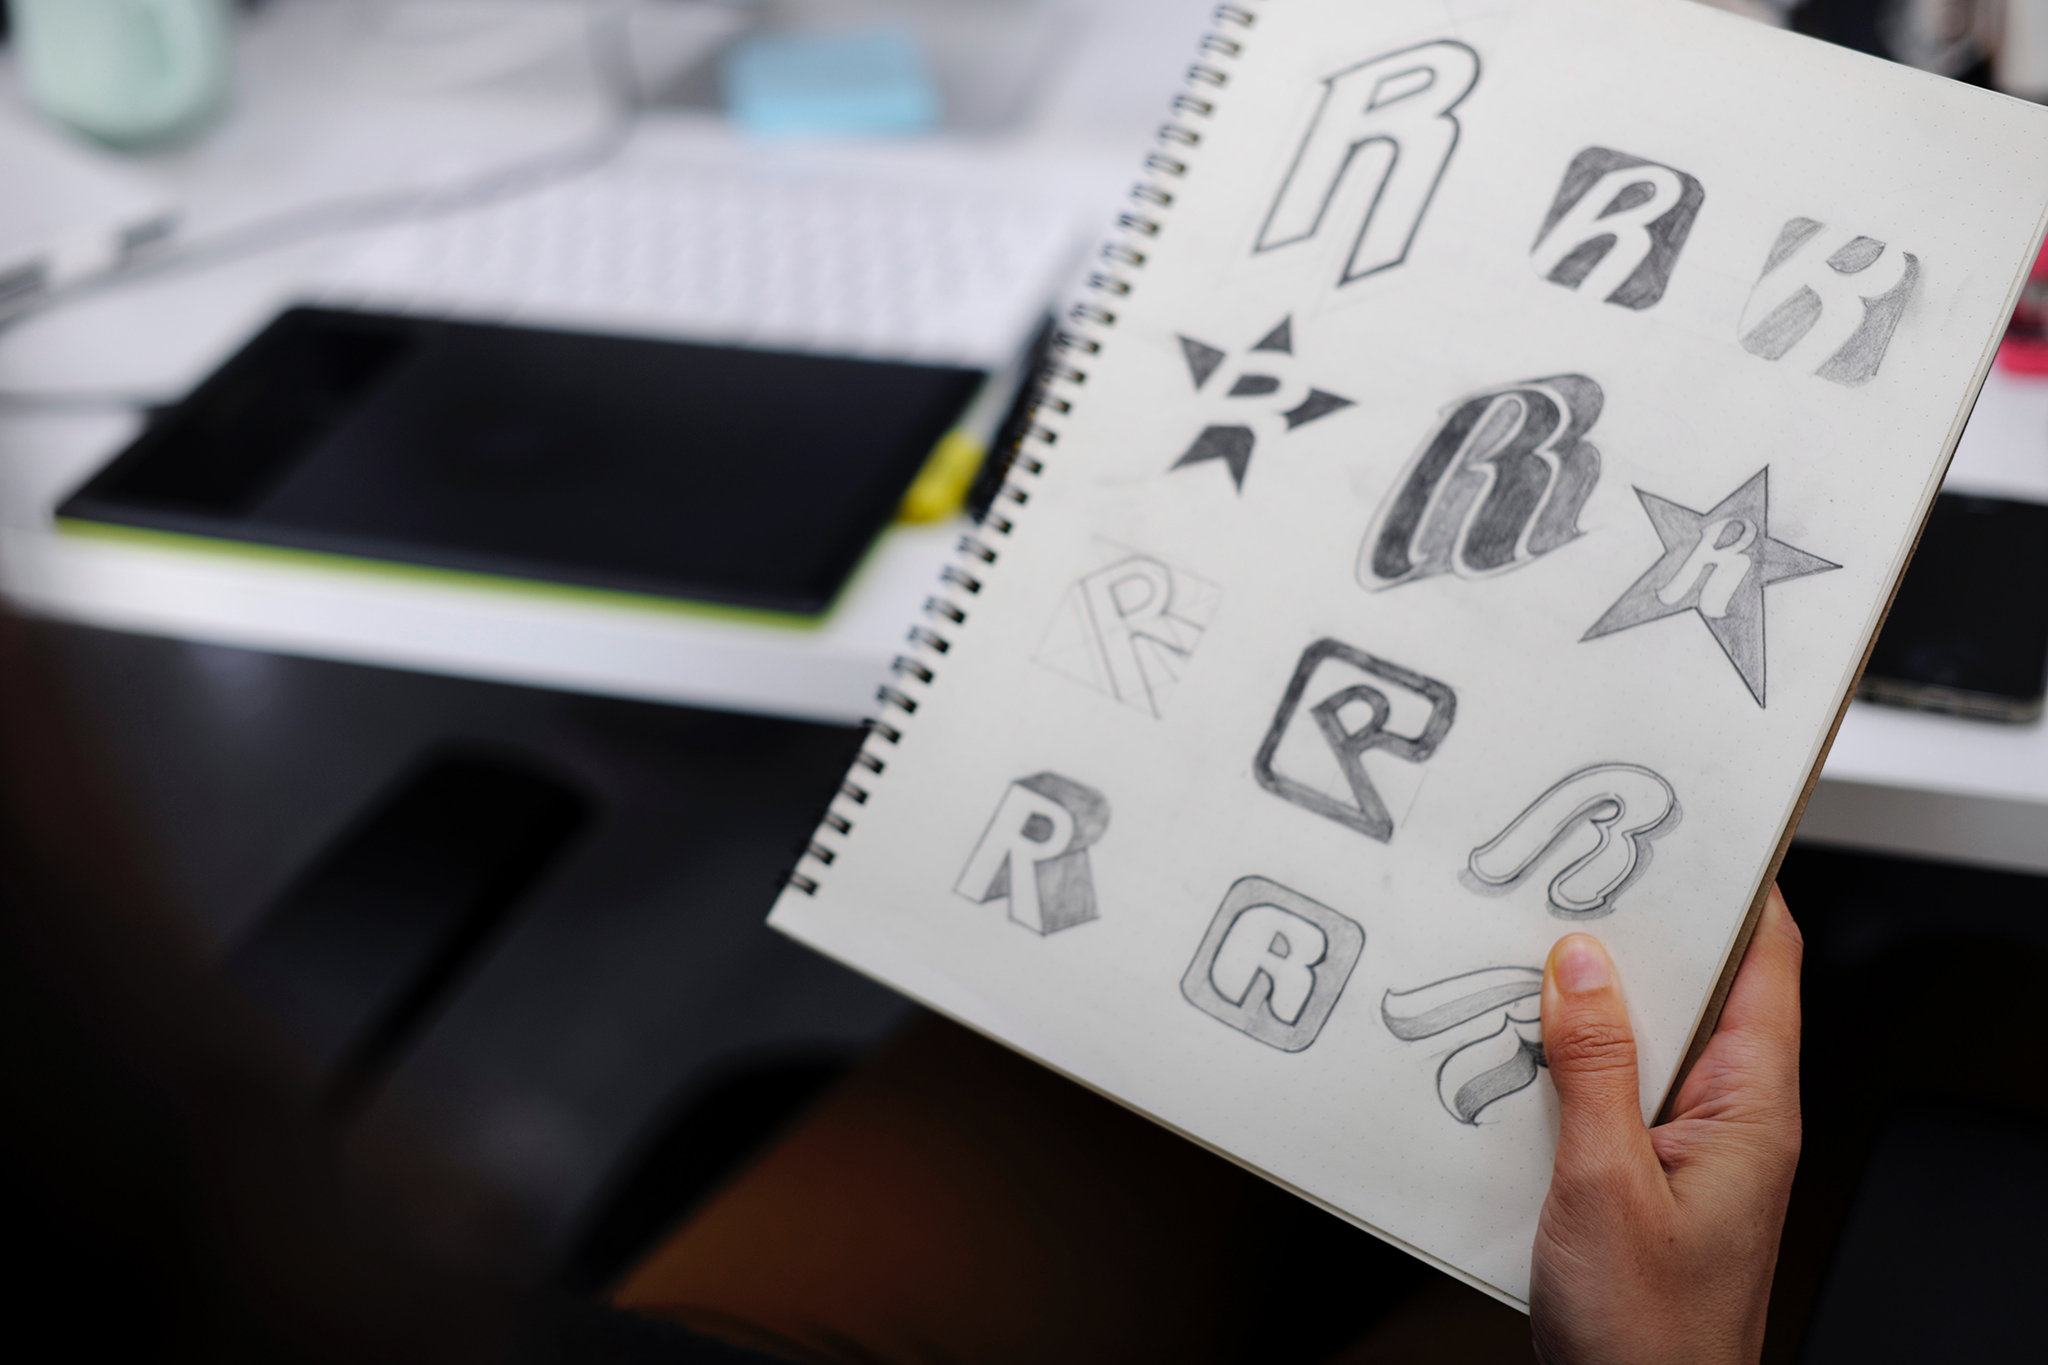 5 ways to create a logo design that kicks ass